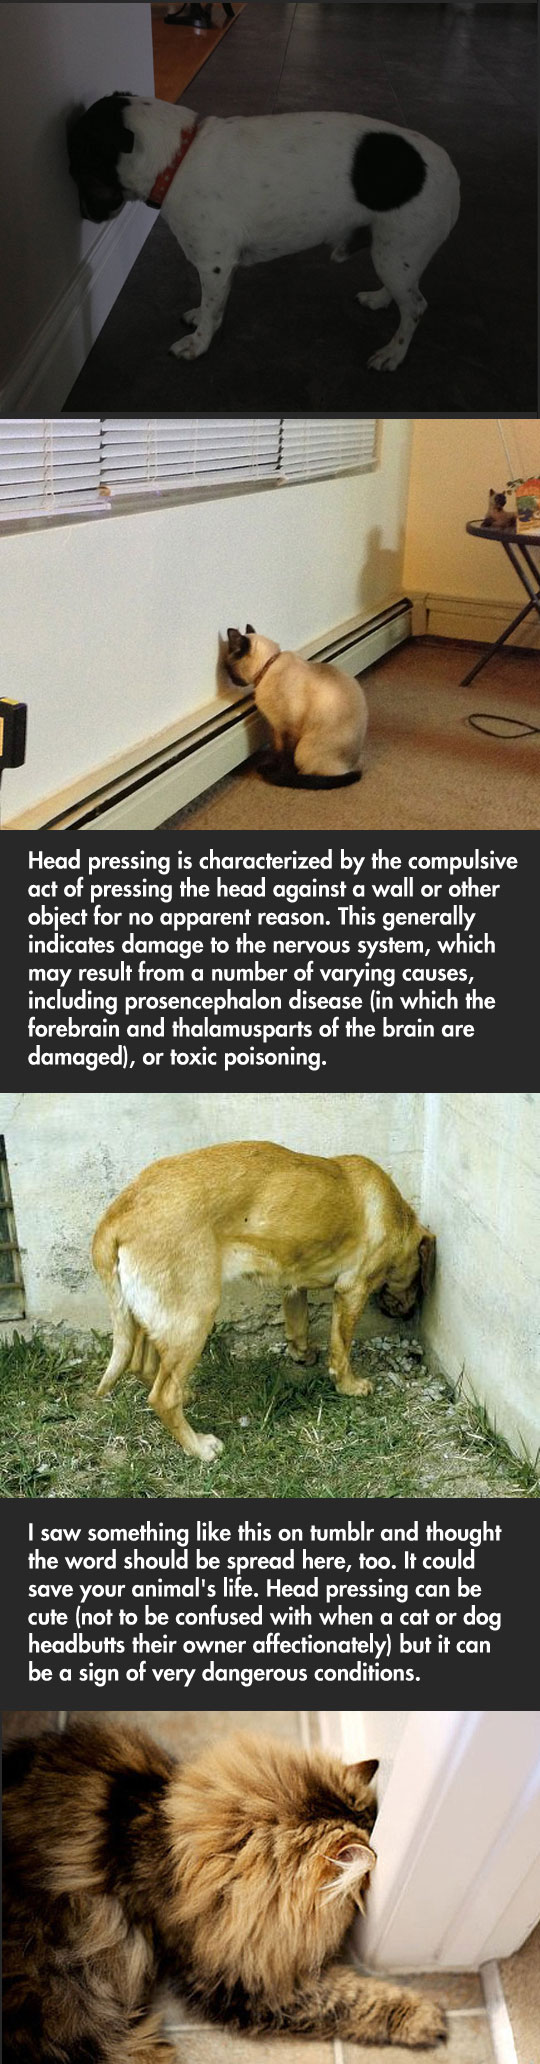 funny-picture-head-pressing-cat-dogs-issue